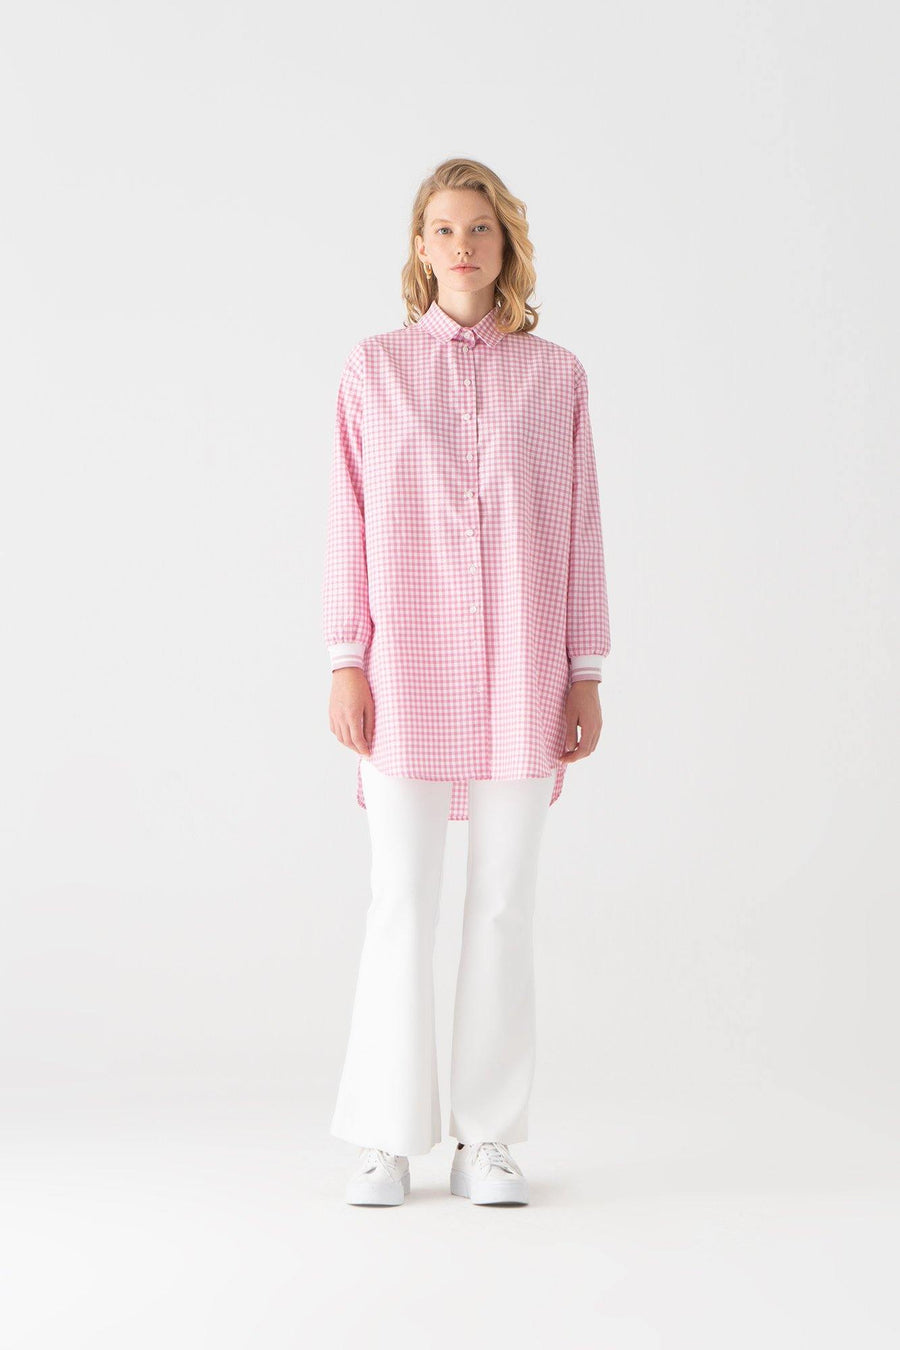 Silvery Gingham Ribbed Shirt